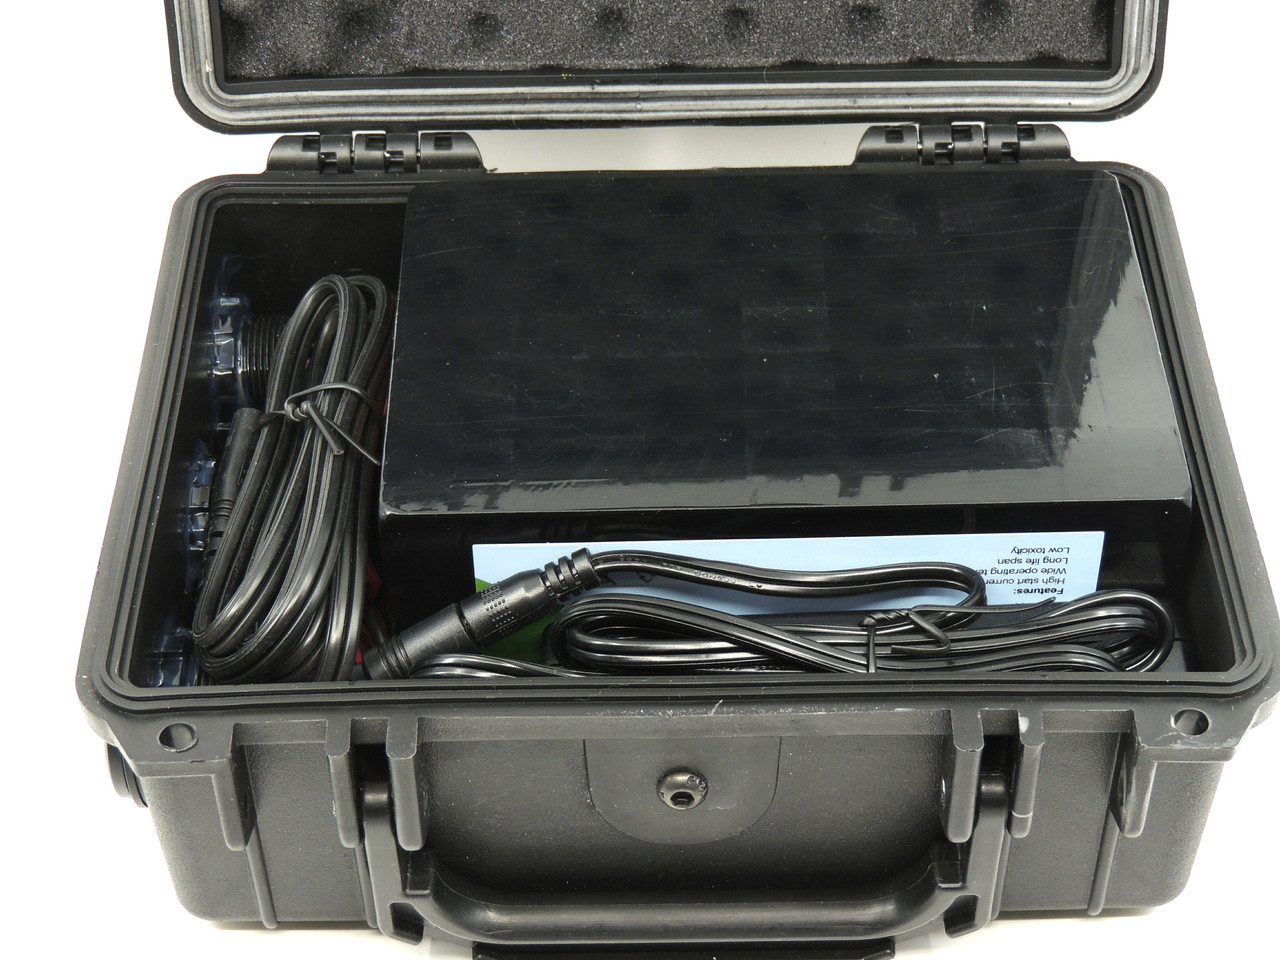 DC12 MITY-T400 GO-BOX for LiFePO4 Battery and Charger